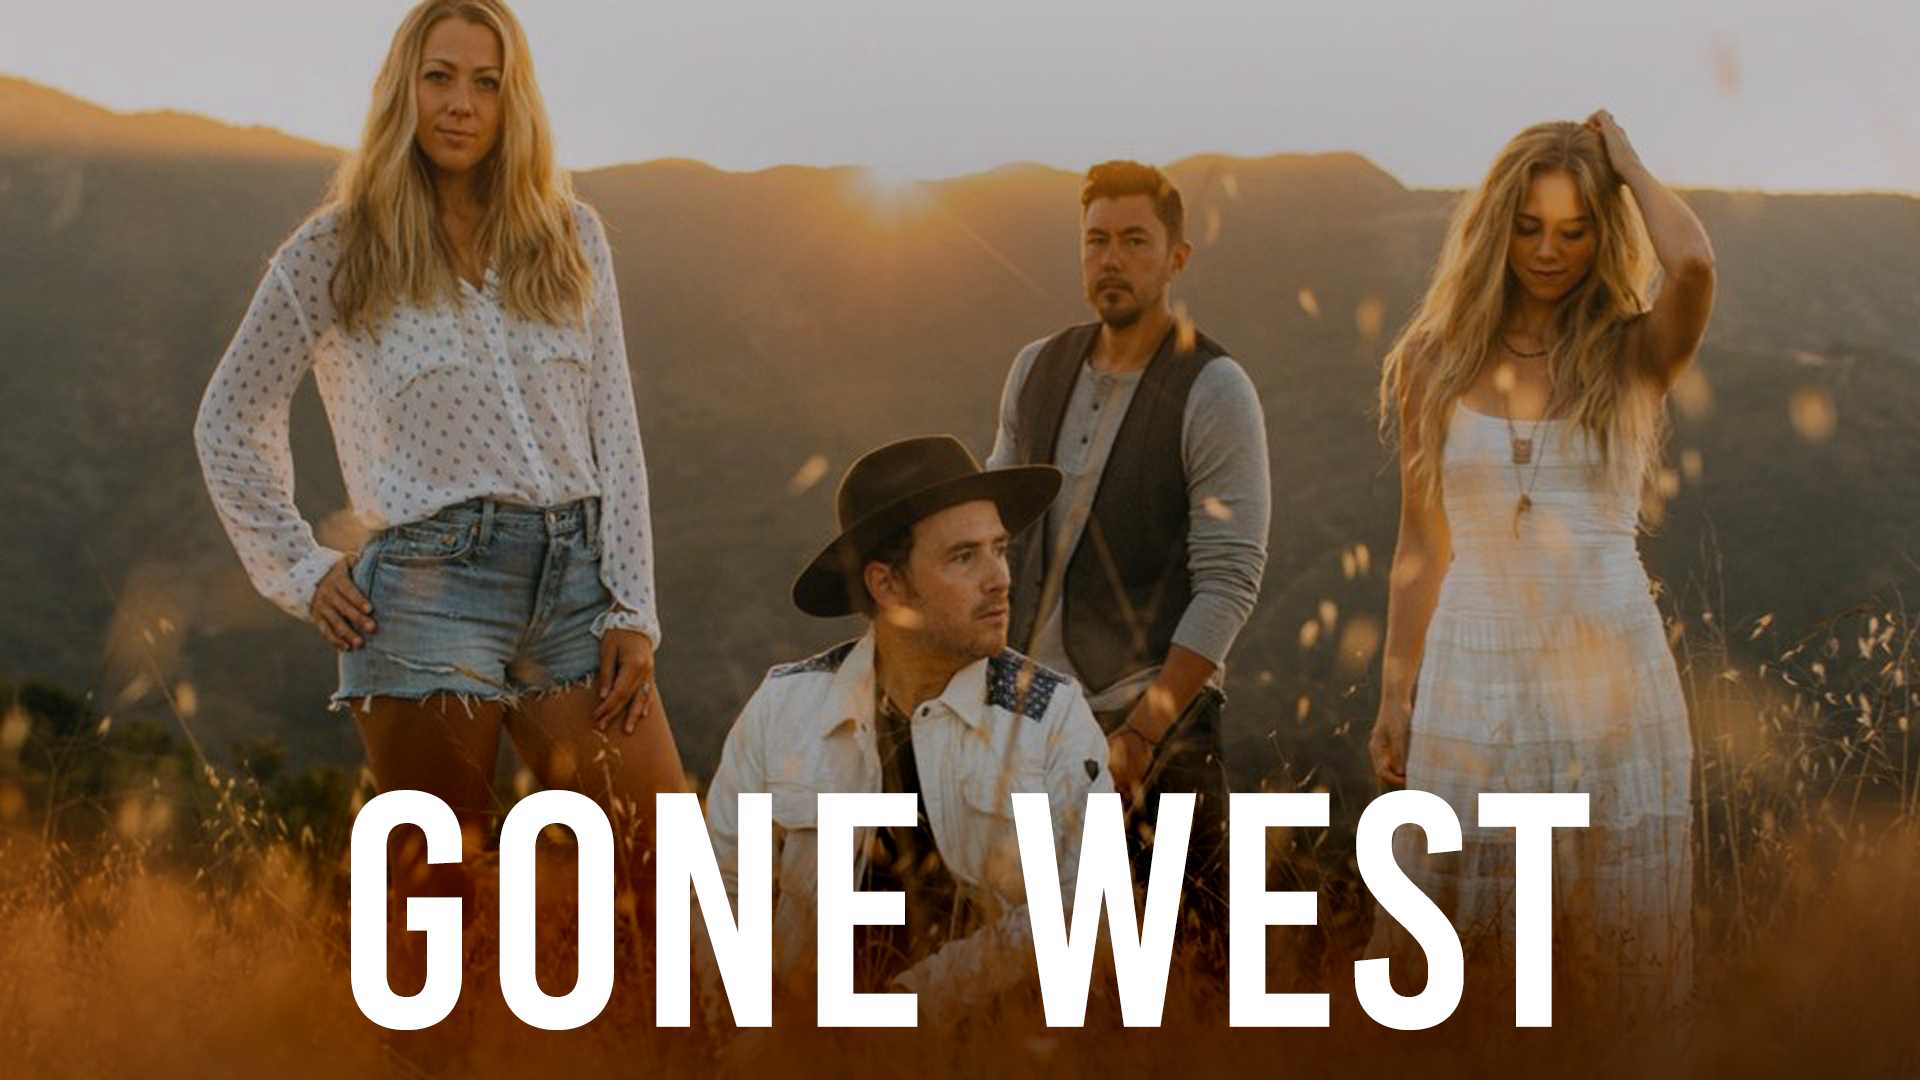 GONE WEST - PopCulture.com Exclusive Interview screen capture